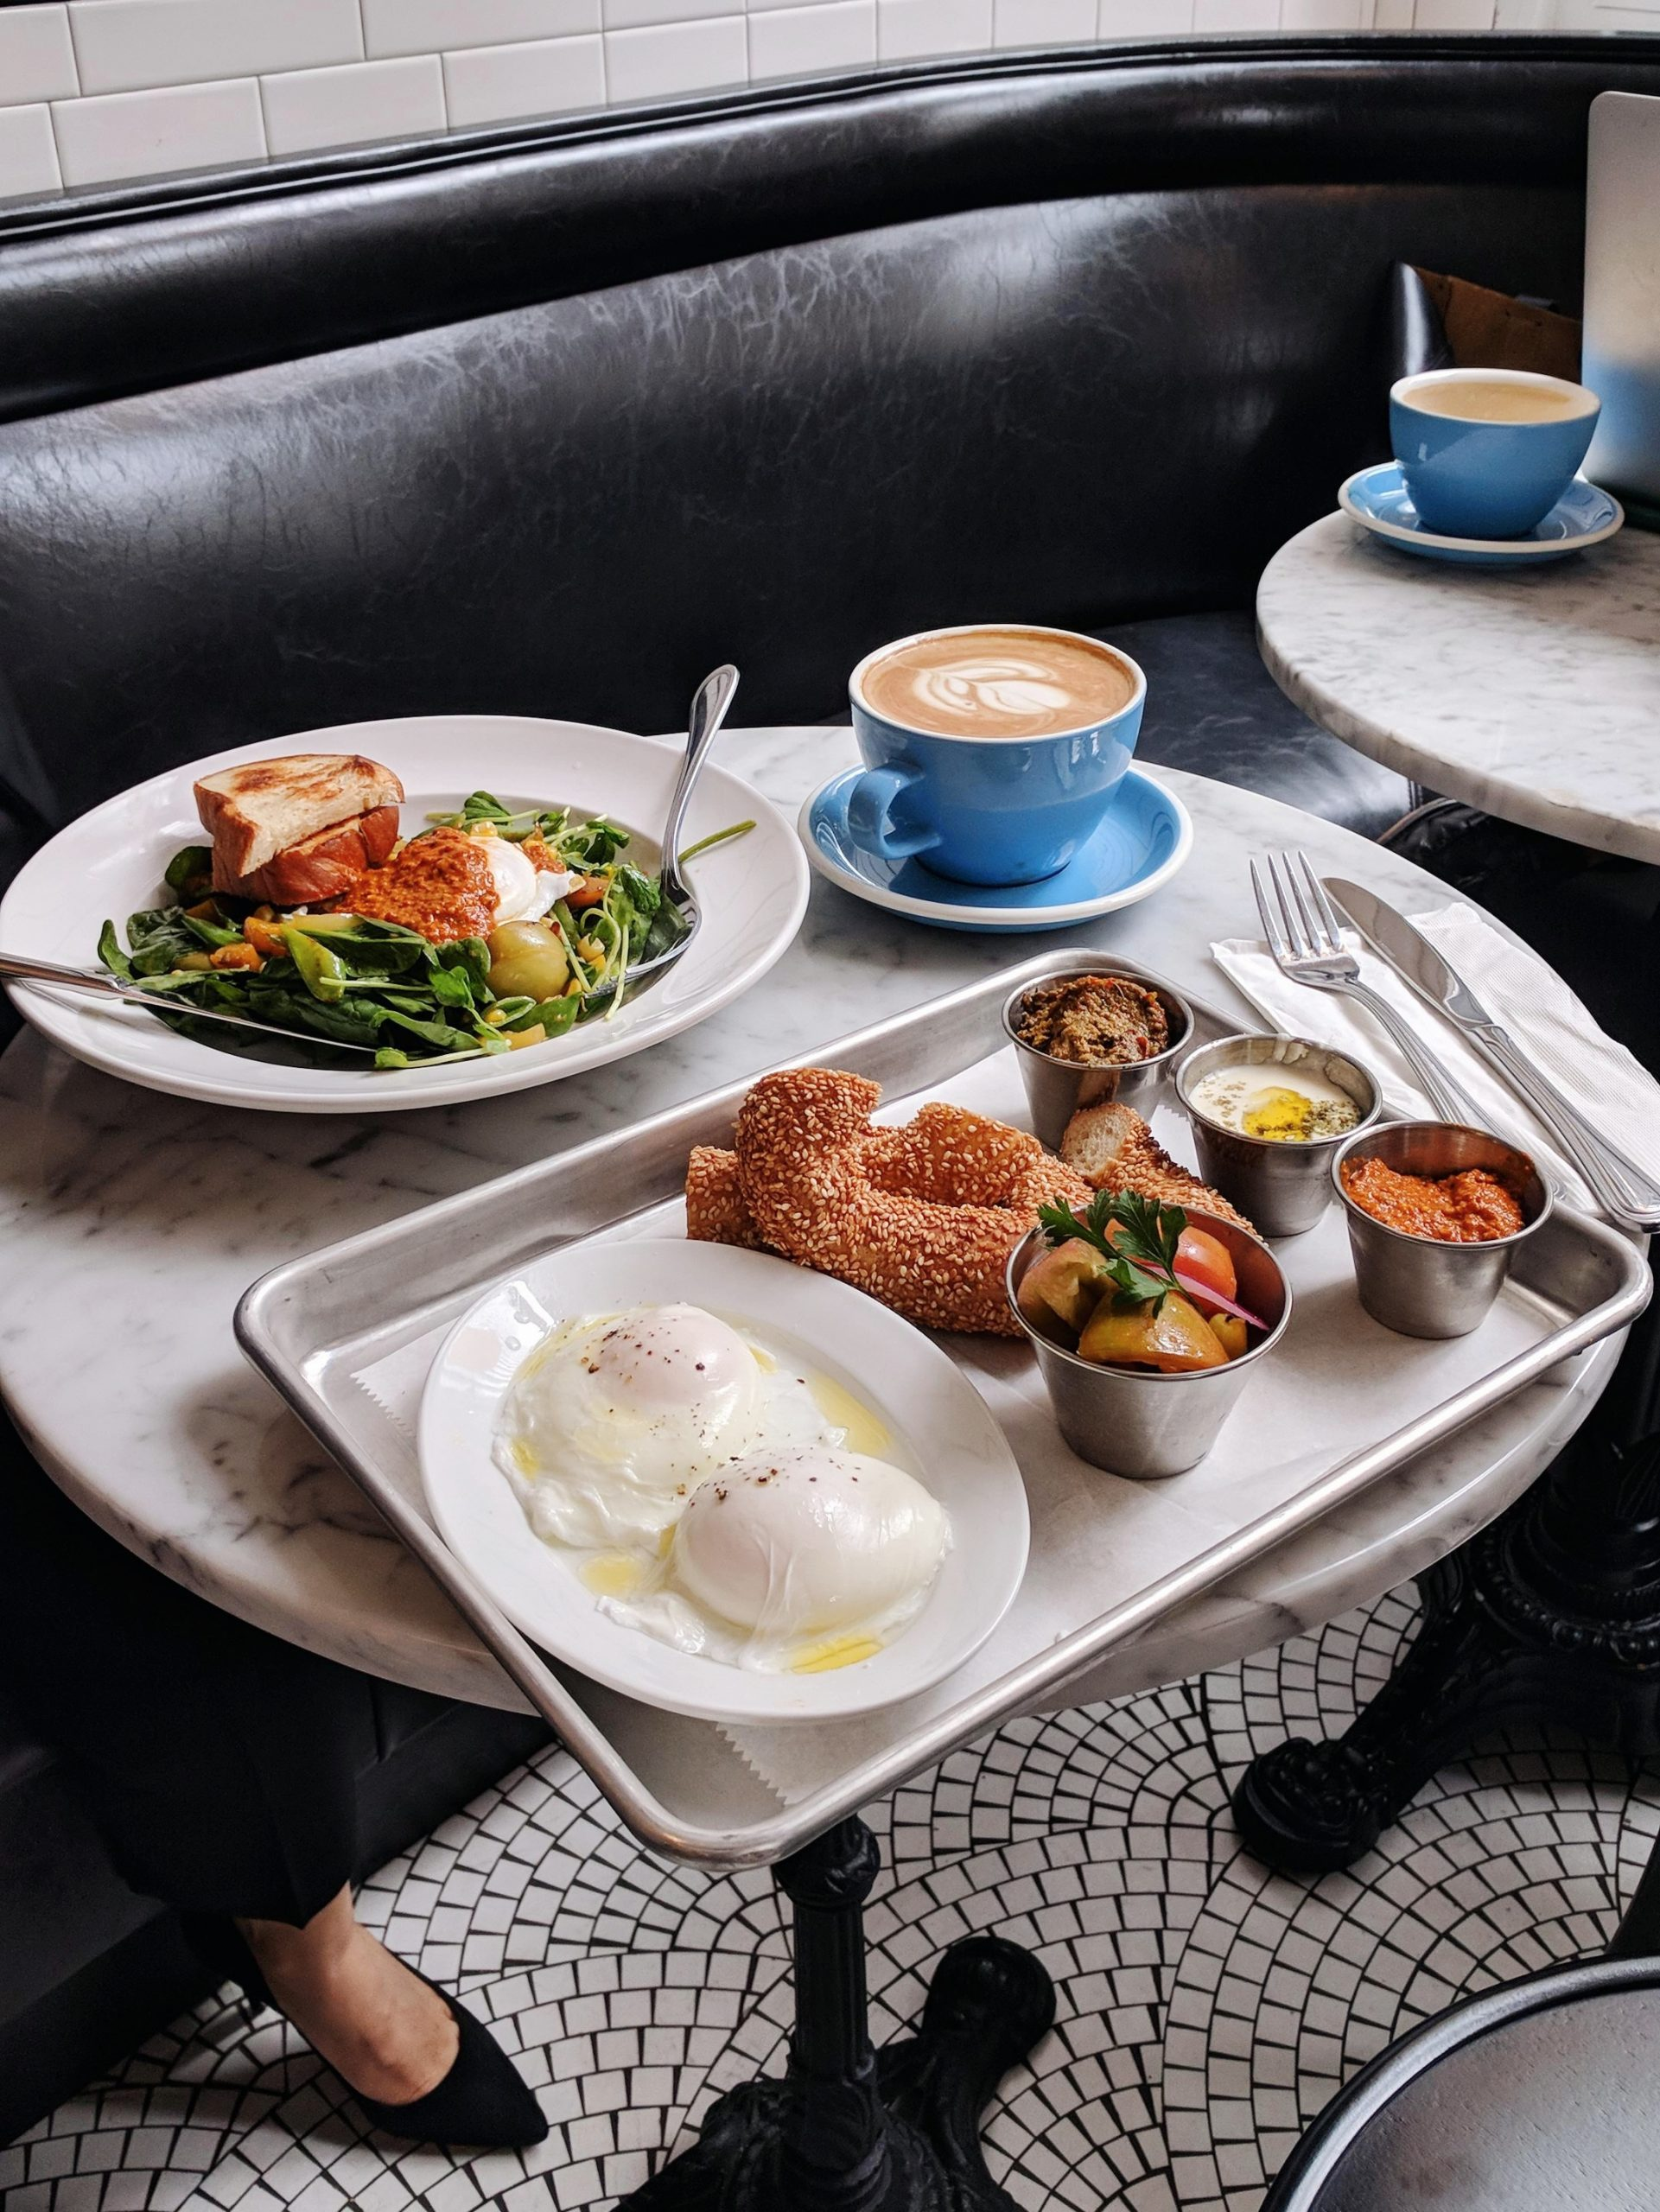 Flatlay of a tray of food, a coffee, and a plate of salad on a white marble table